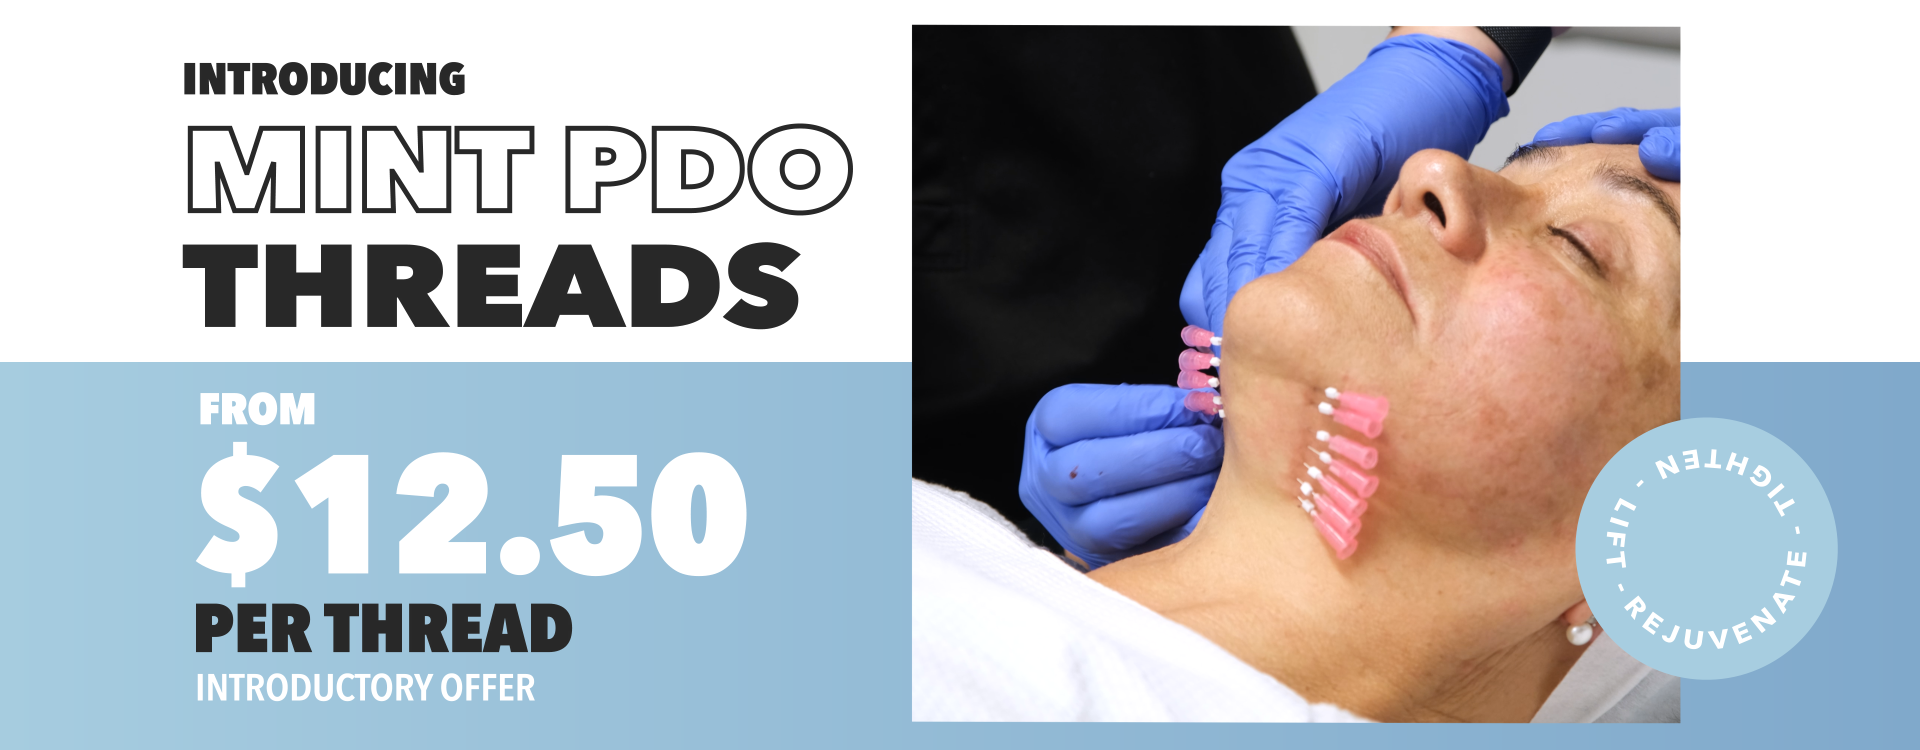 mint pdo threads banner promotion